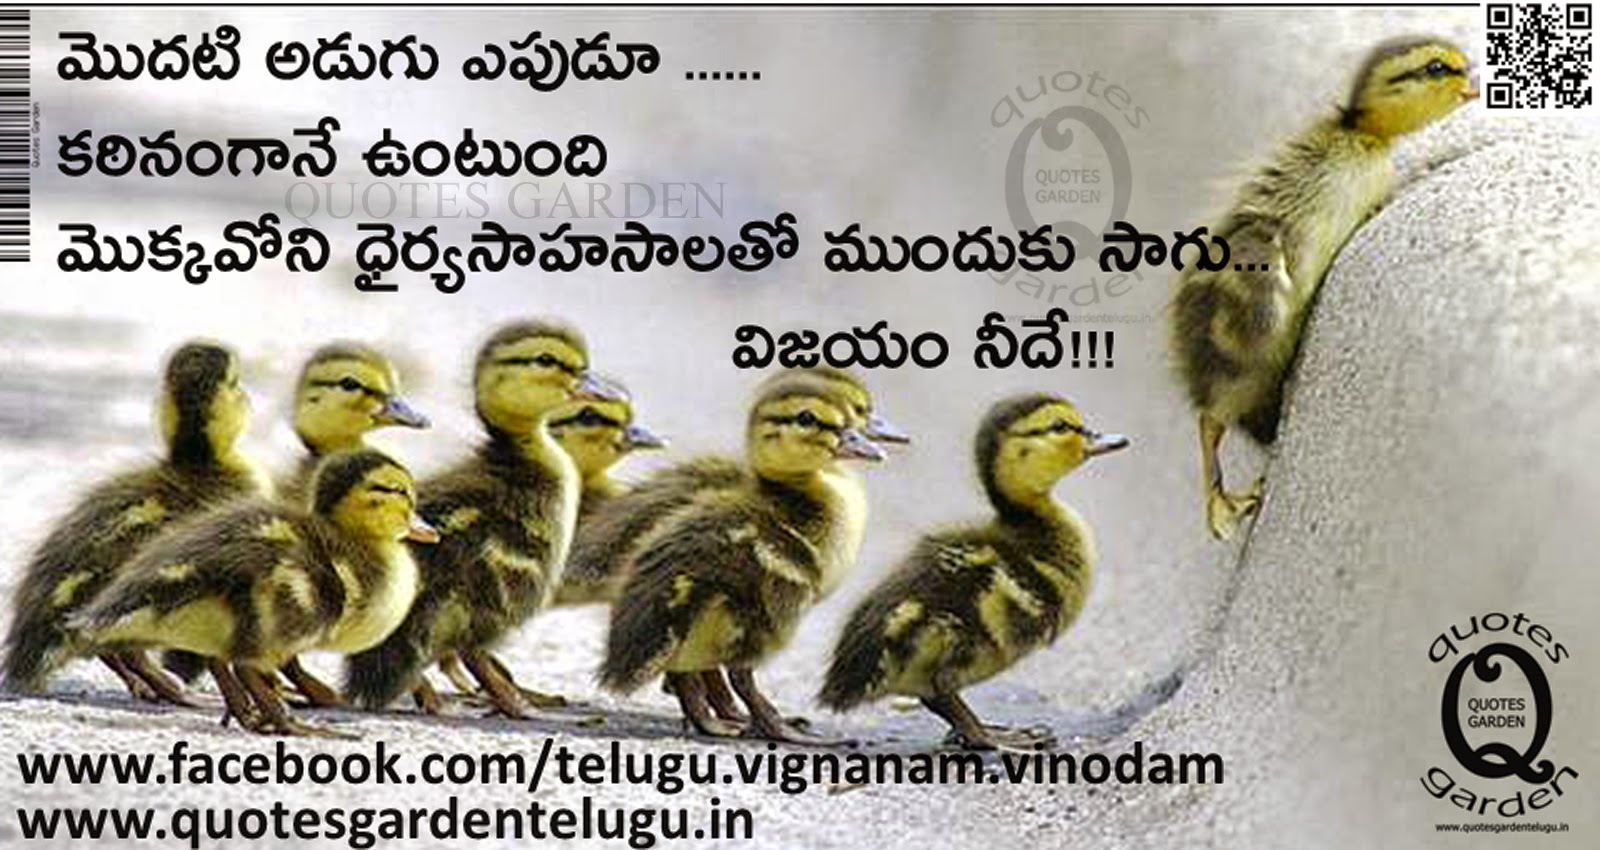 Best telugu life quotes for face book- Life quotes in telugu - Best inspirational quotes about life - Best telugu inspirational quotes - Best telugu inspirational quotes about life